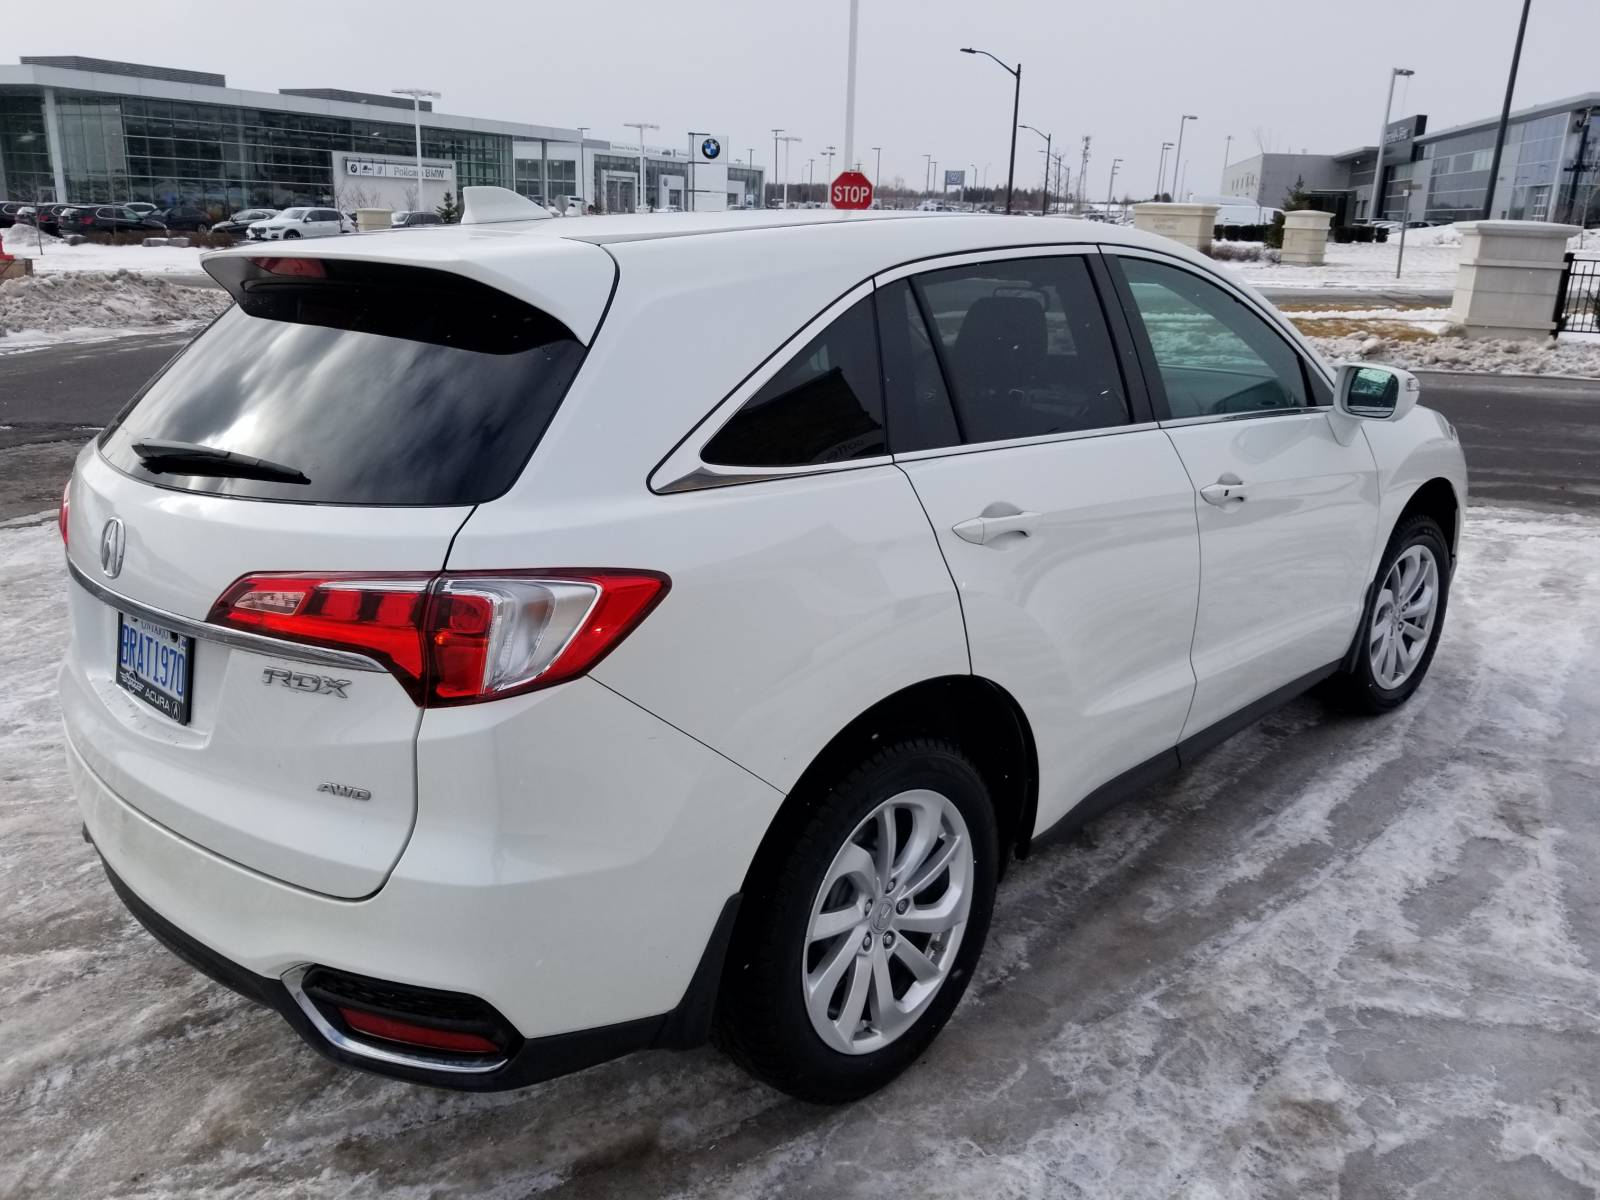 acura lease takeover in gta  on  2018 acura rdx automatic awd id  4249  u2022 leasecosts canada